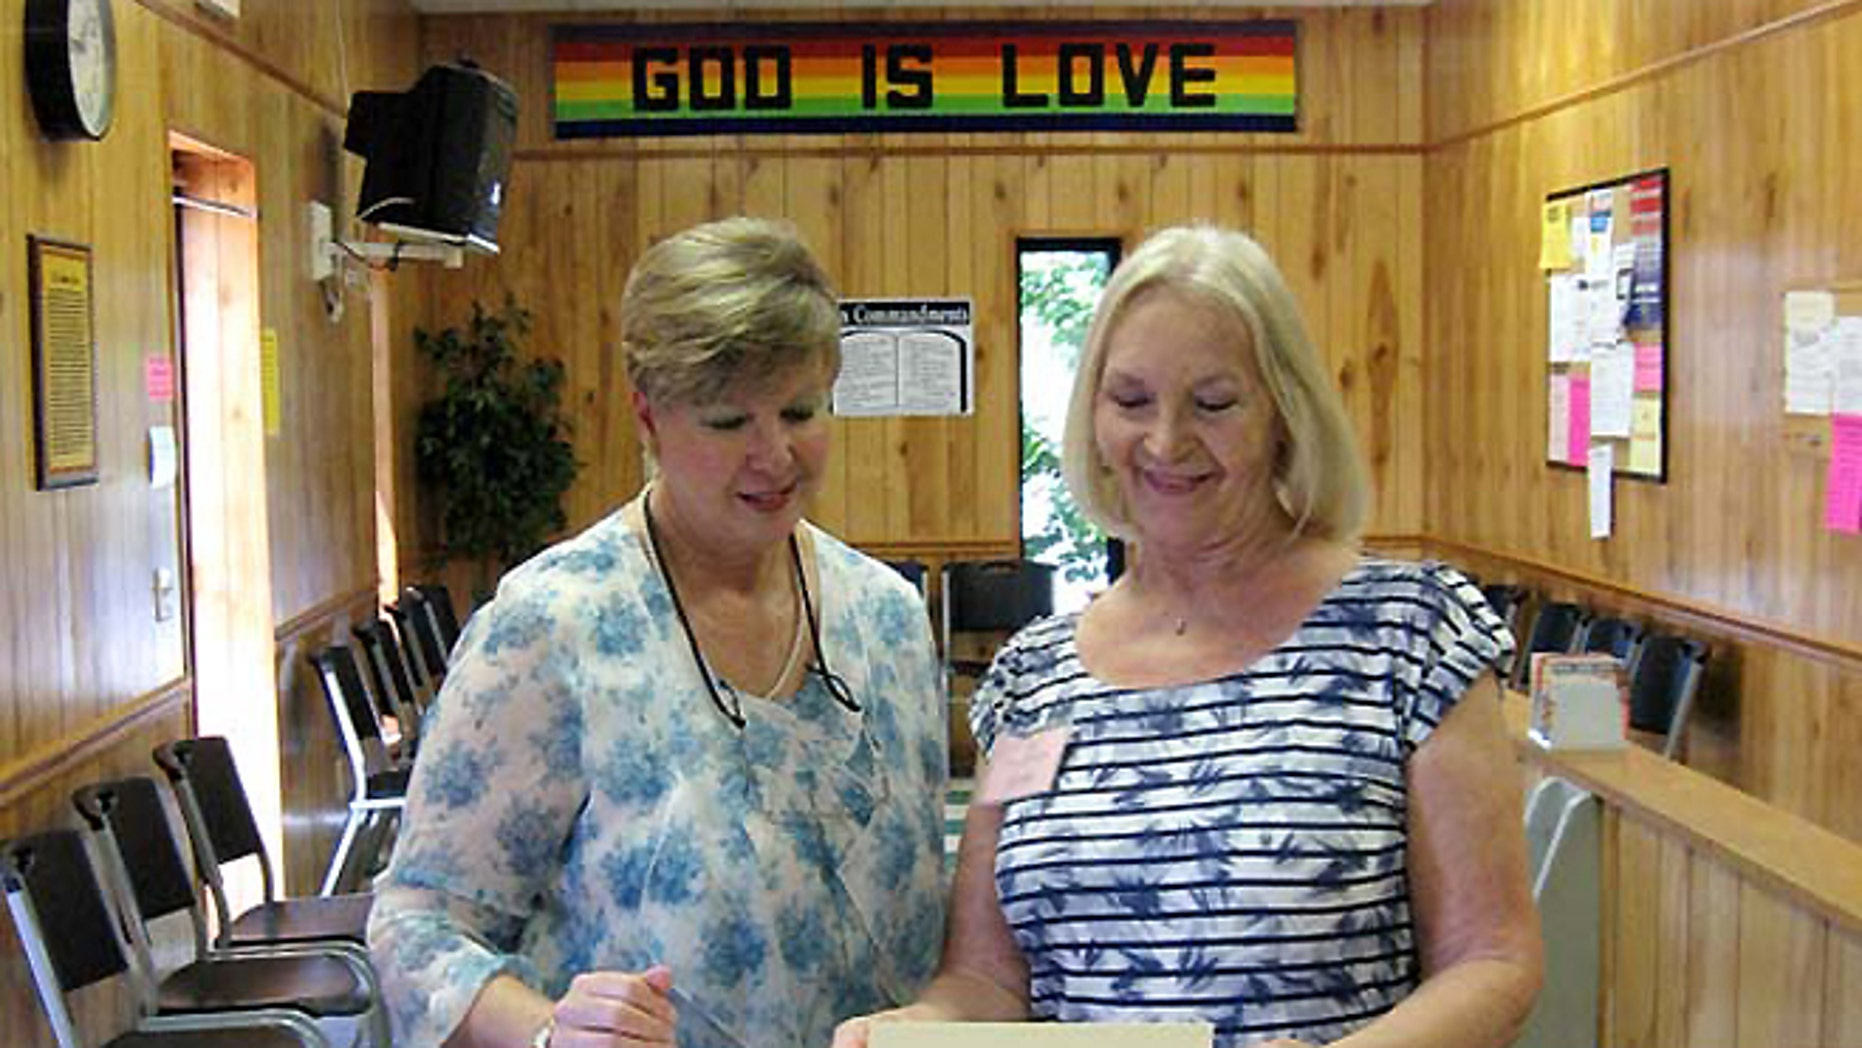 Christian Services Center Executive Director Kay Daly, left, works with a volunteer.